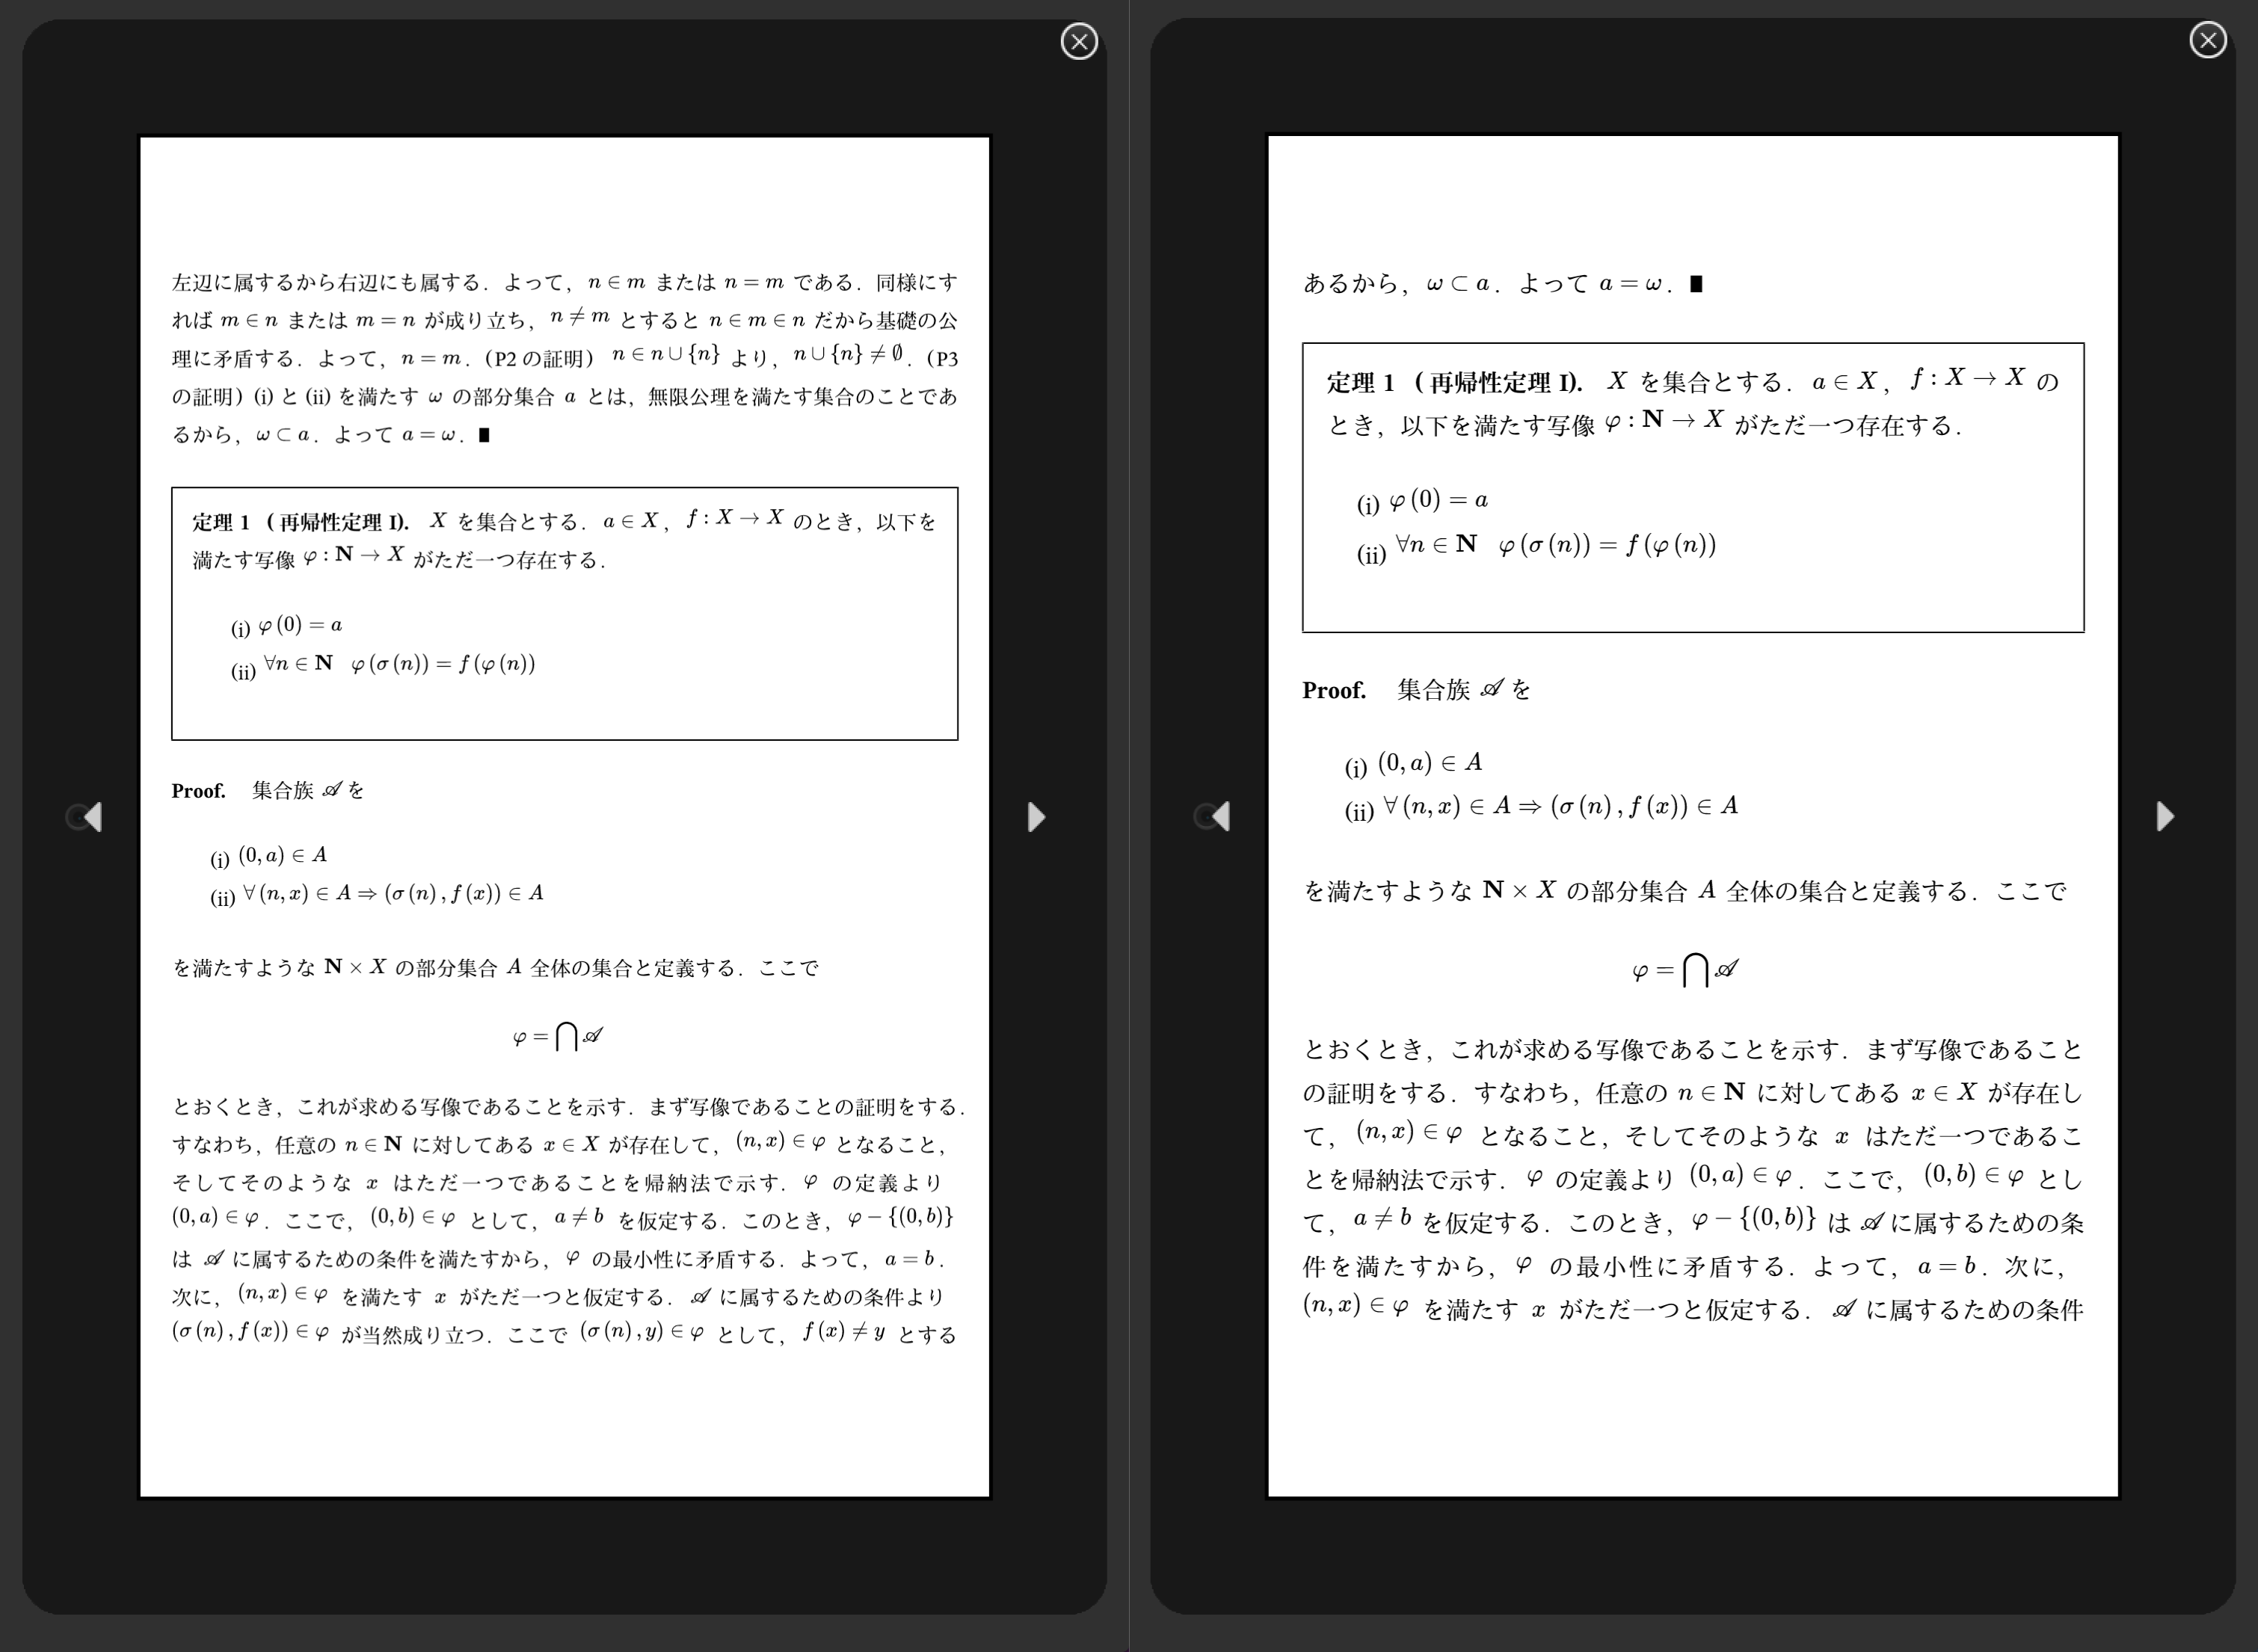 kindle_mathml_preview.png